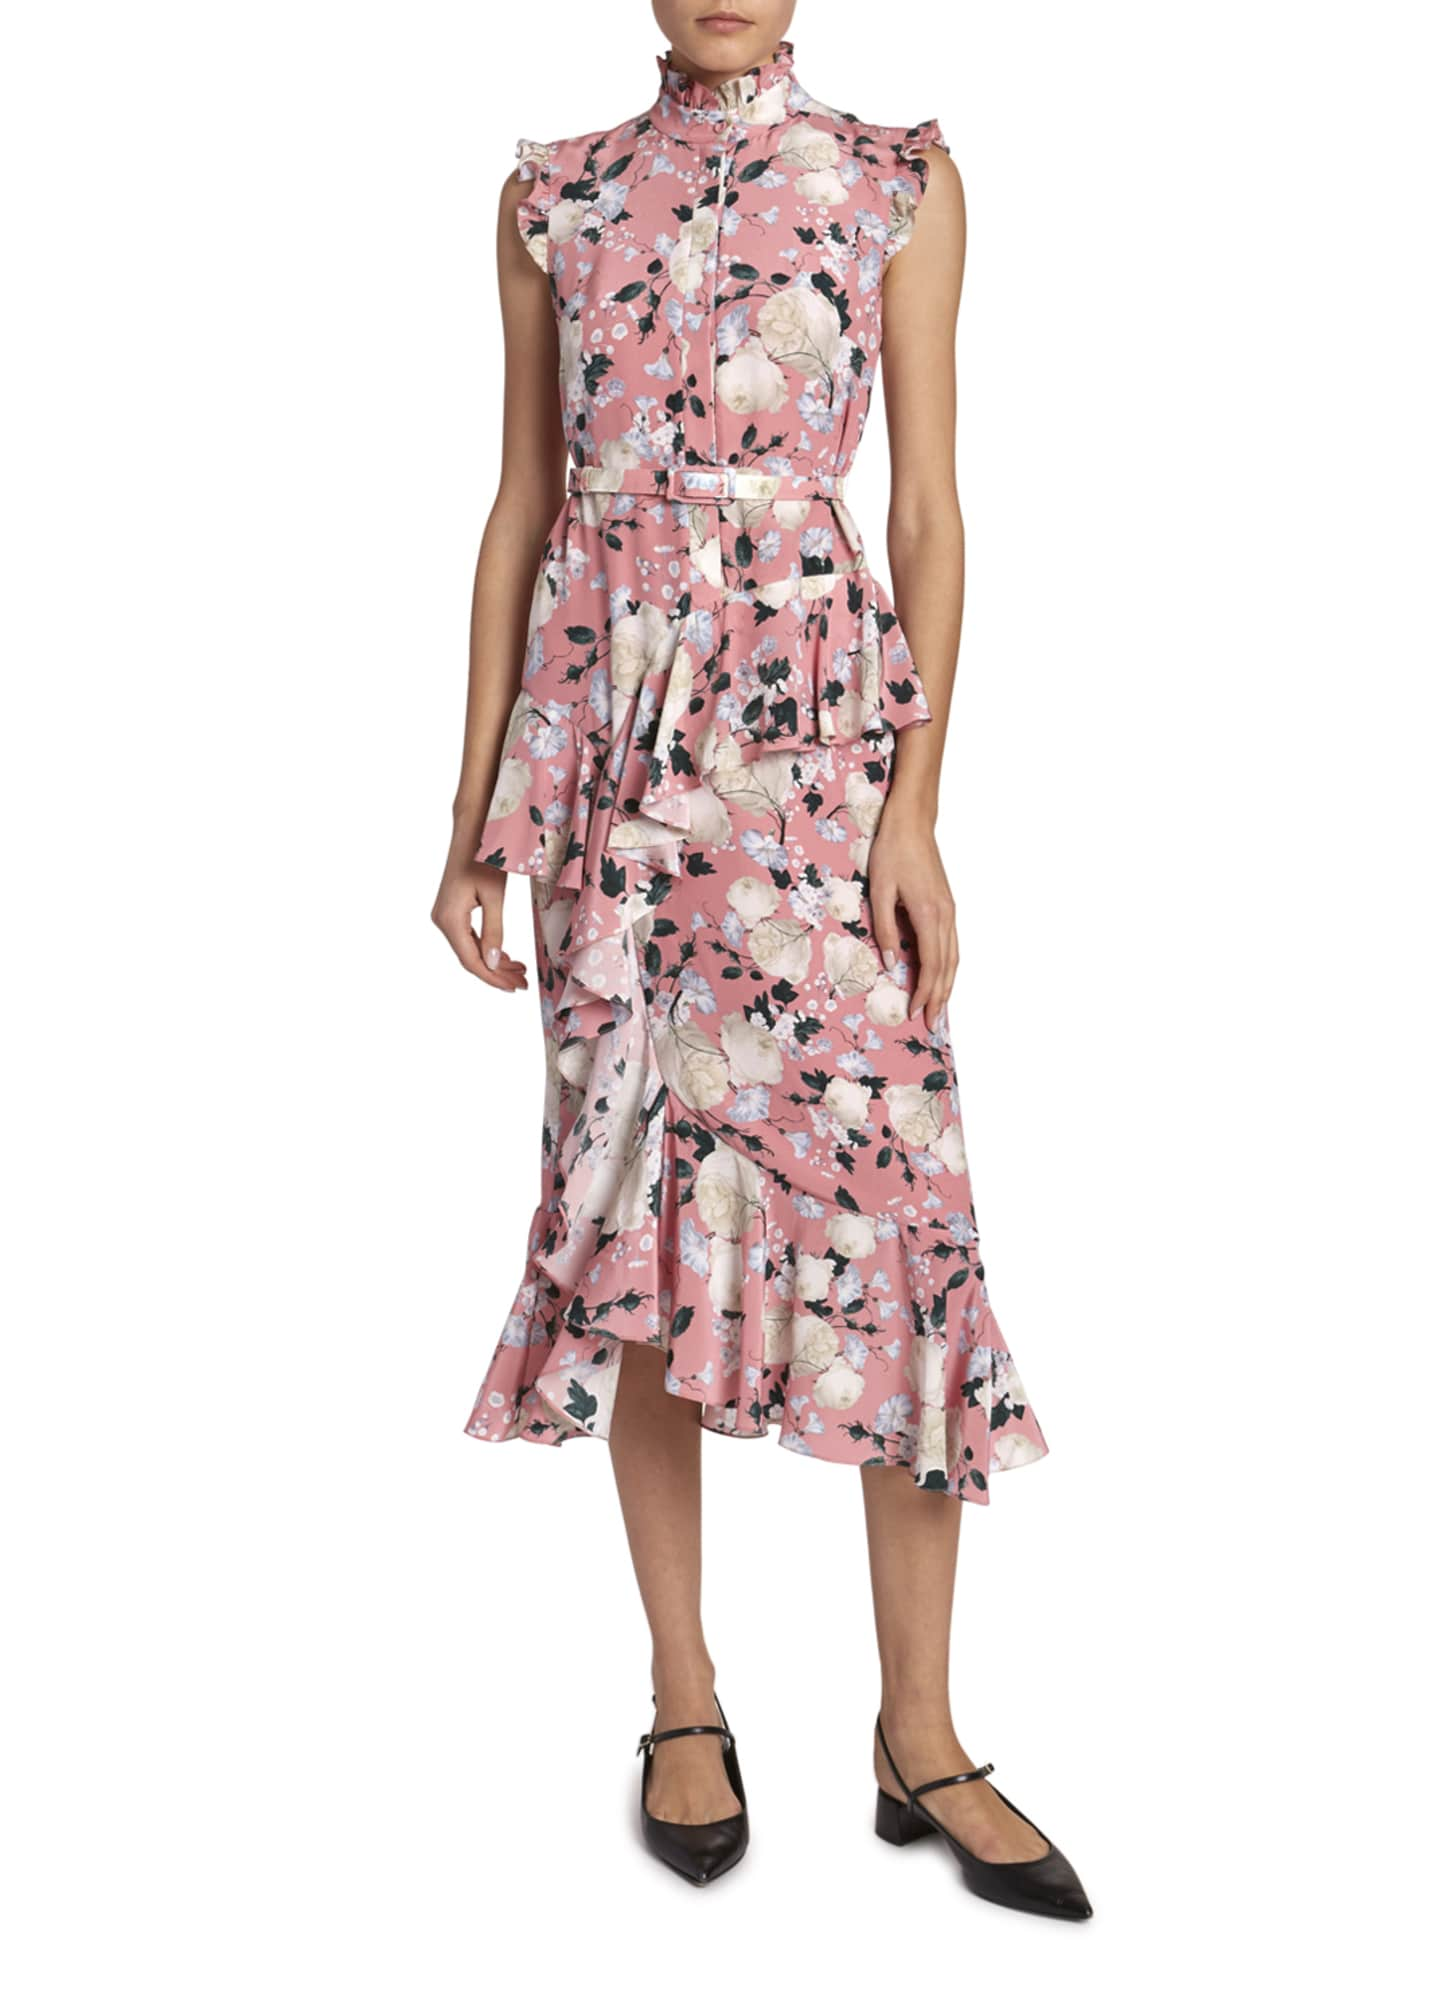 Erdem Irina Ruffled Floral Cap-Sleeve Dress